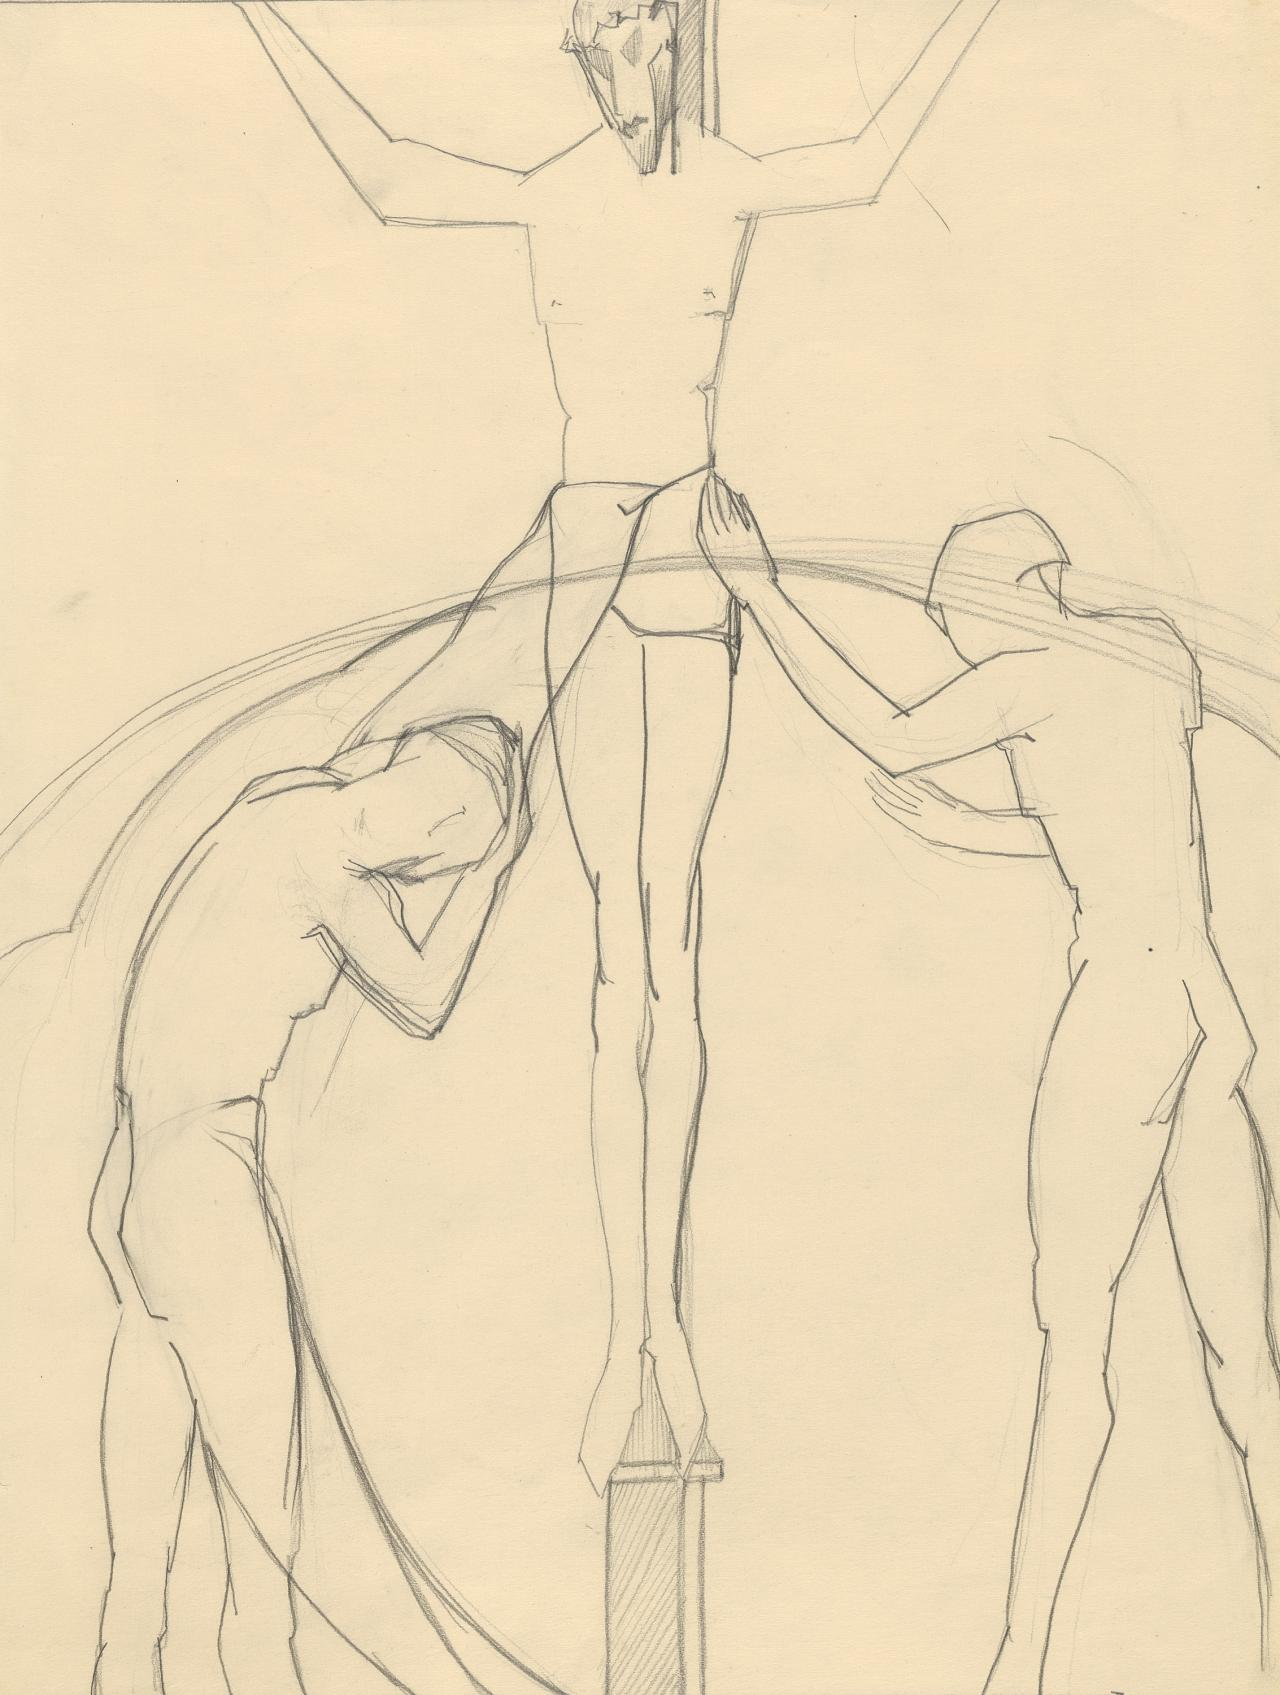 Three figures in crucifixion scene